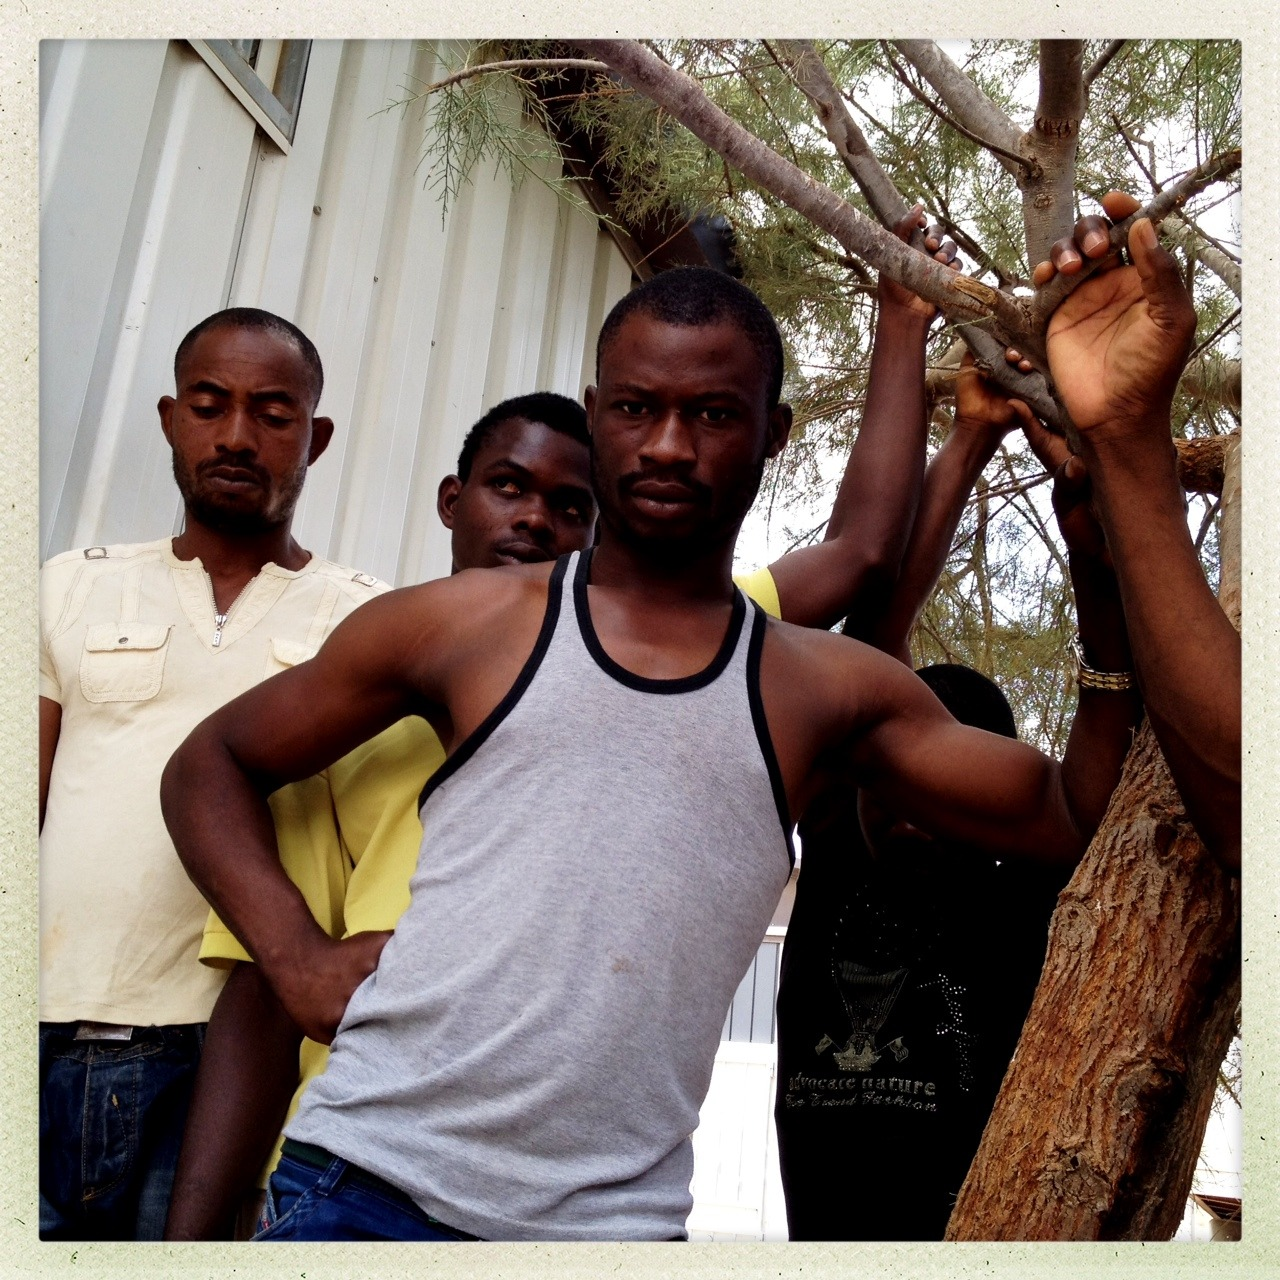 Gharyan, Libya | July 23, 2012  Illegal migrants from Nigeria, held at a Libyan detention center, wait to be processed and receive travel papers, enabling them to be repatriated via a UN chartered plane. Libyan authorities have been increasingly hostile to African migrants and the threat of deportation includes transportation via a truck through the blisteringly hot Sahara desert. (Photo by Benjamin Lowy/Getty Reportage) Conflict photographer Ben Lowy, on a grant from the Magnum Foundation's Emergency Fund, is shooting from Libya on the first-ever photojournalism inspired Hipstamatic lens — and posting exclusively to Tumblr. Check out Lowy's Tumblr and Storyboard for more. Also see Storyboard's interview with the photographer.